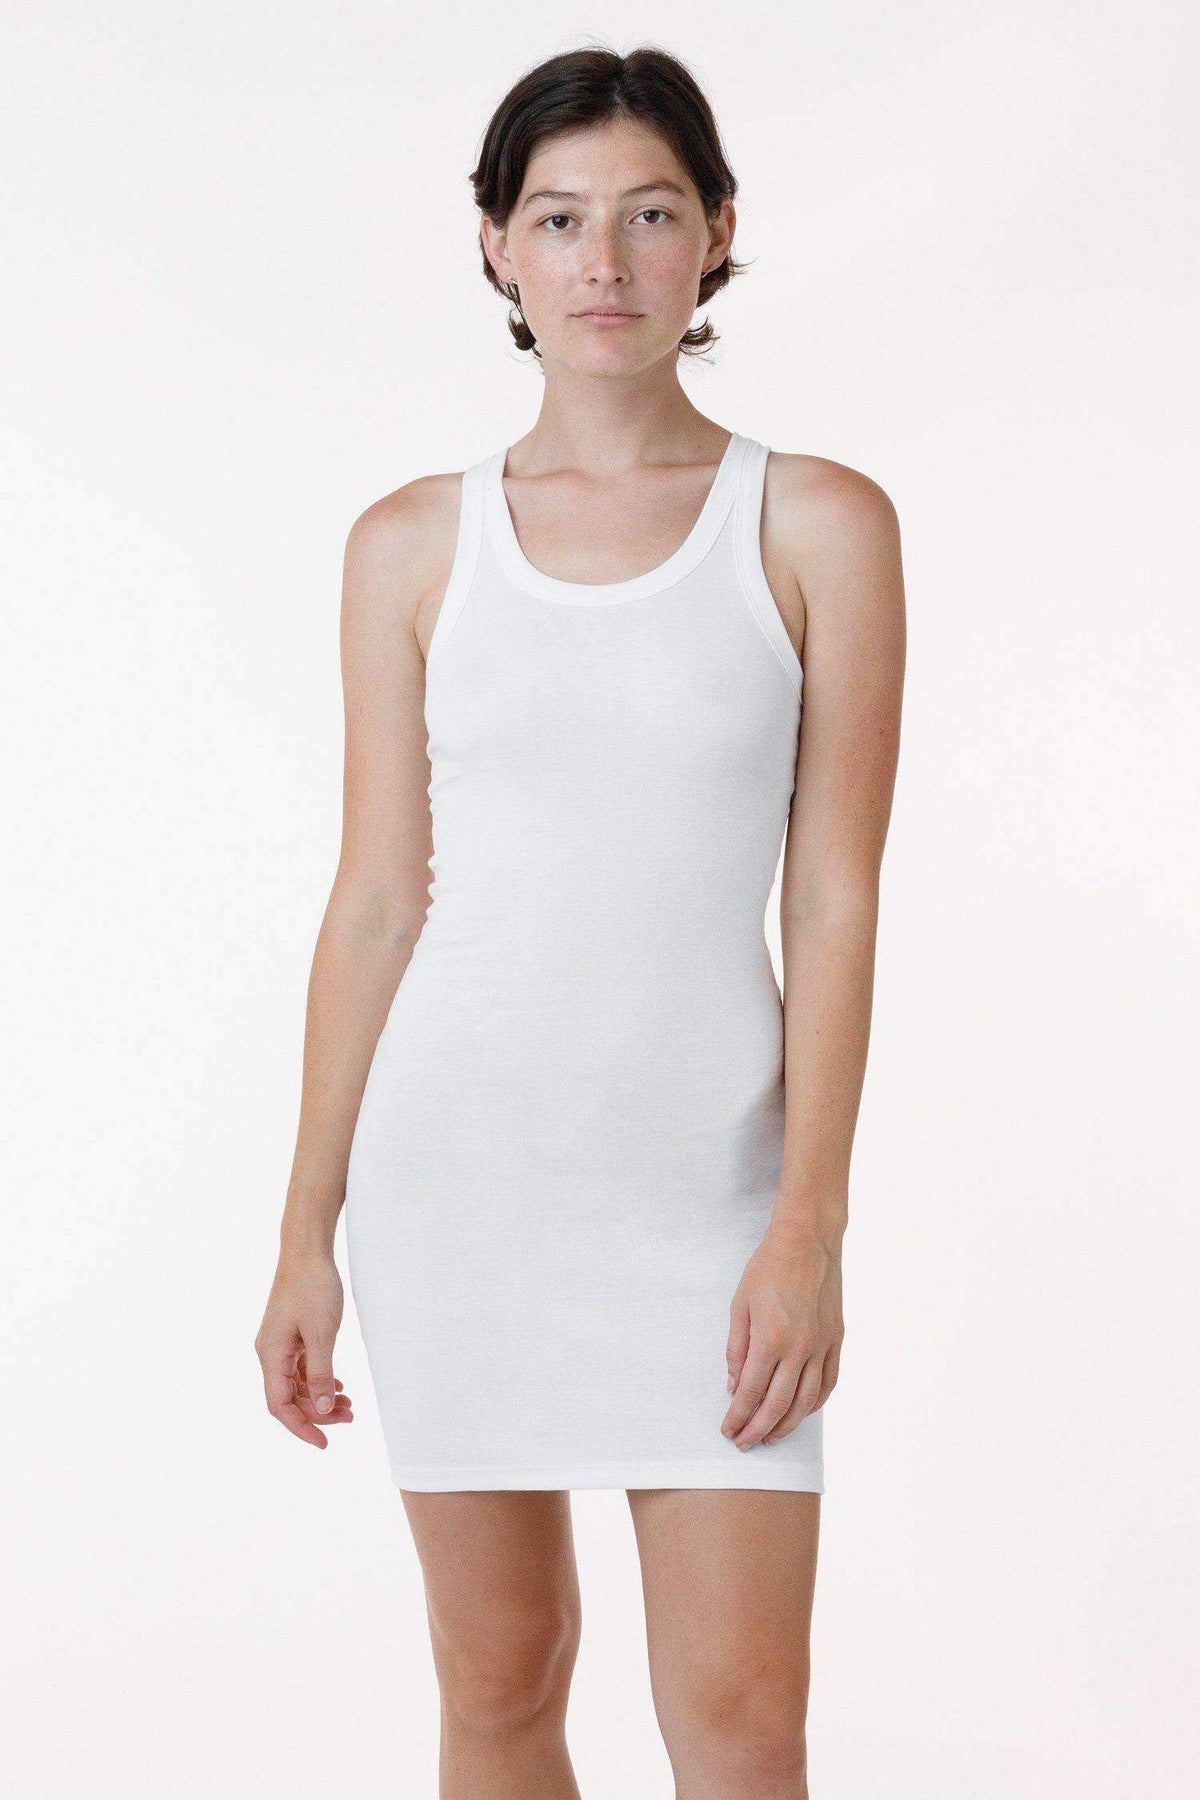 43286 - Baby Rib Mini Tank Dress Dress Los Angeles Apparel White S